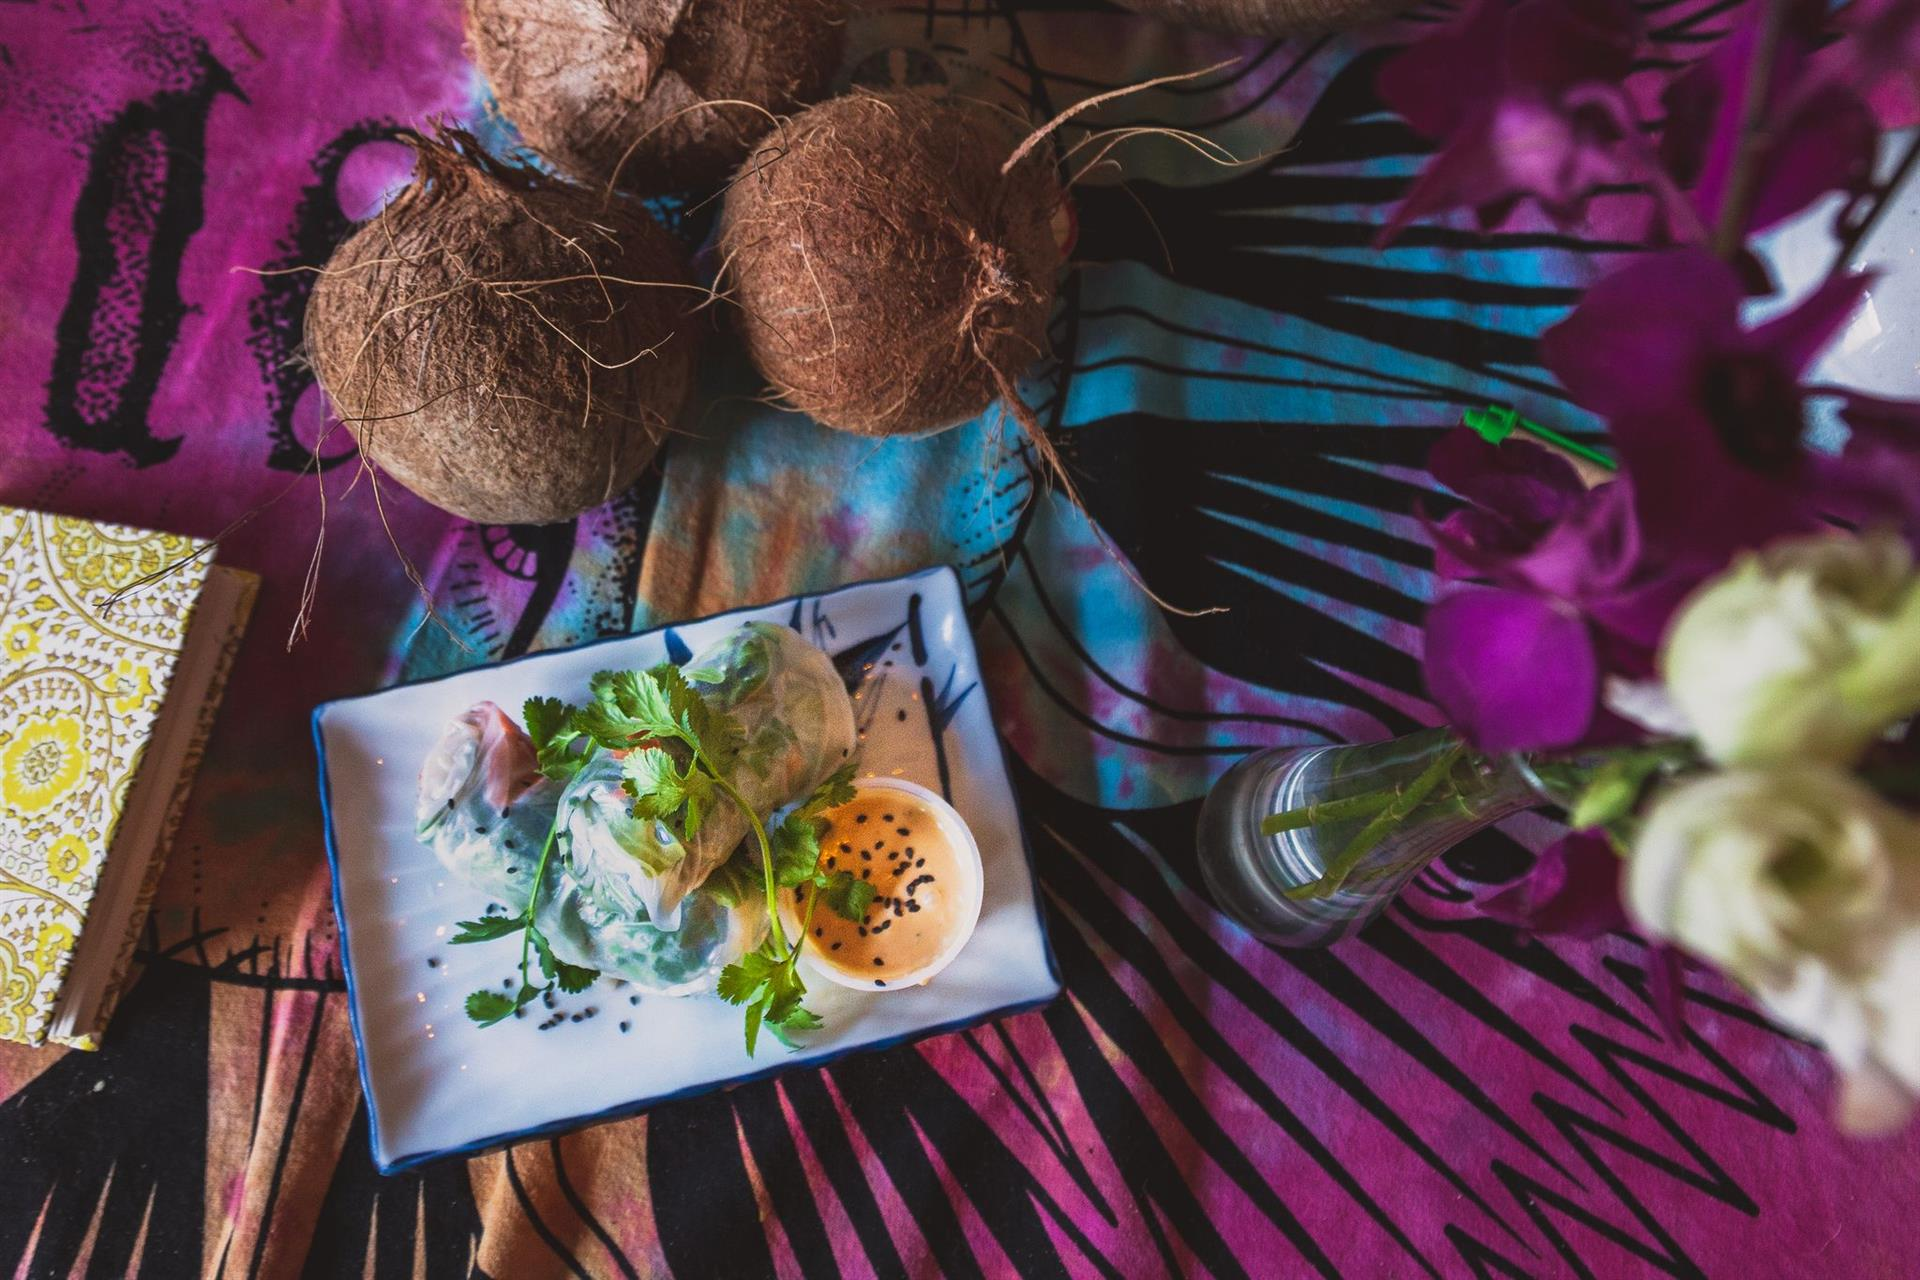 Small plate of food and coconuts on a bright tablecloth